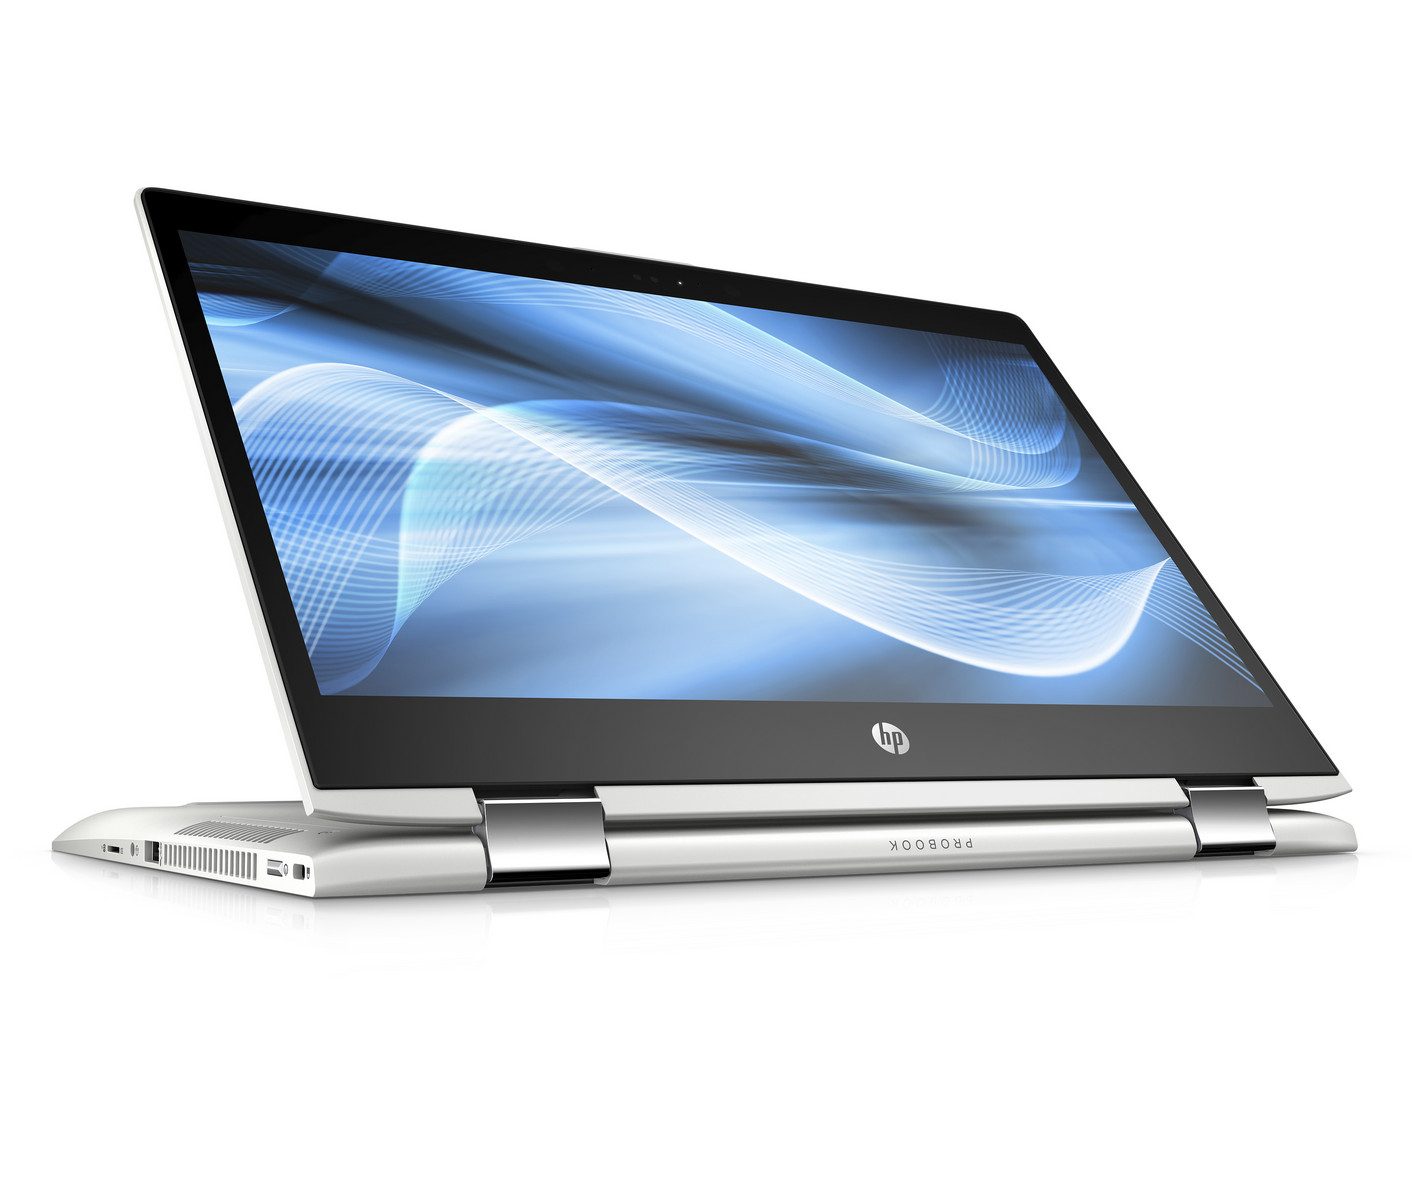 HP ProBook x360 440 G1 convertible integrates both Spectre and